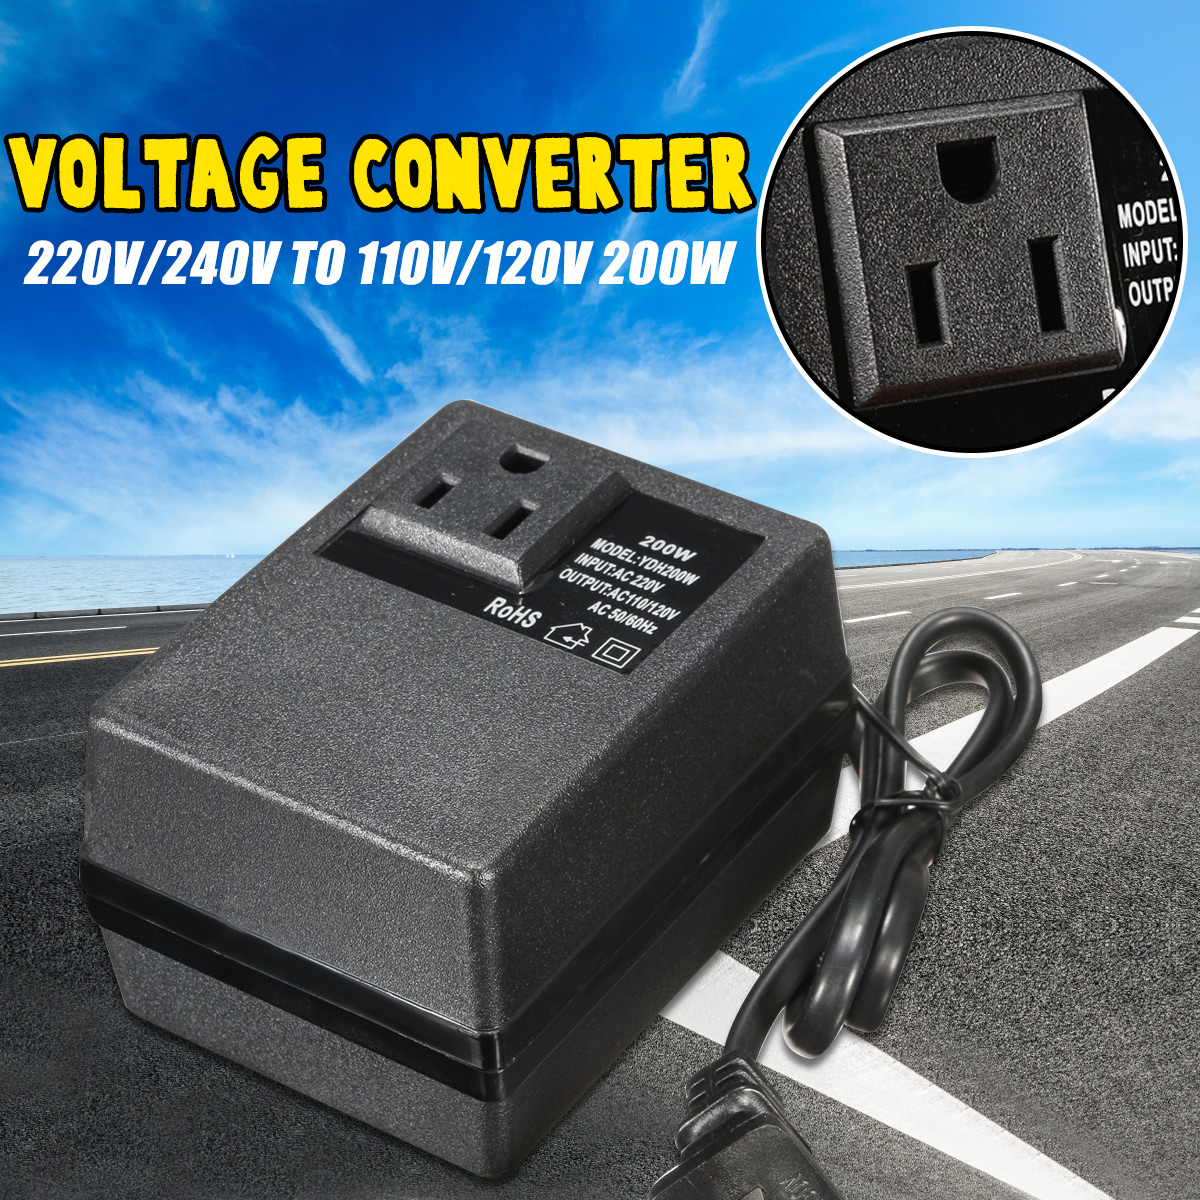 цена на 220V 240V to 110V 120V 200W Electronic International Travel Power Converter Voltage Converter Power Adapter